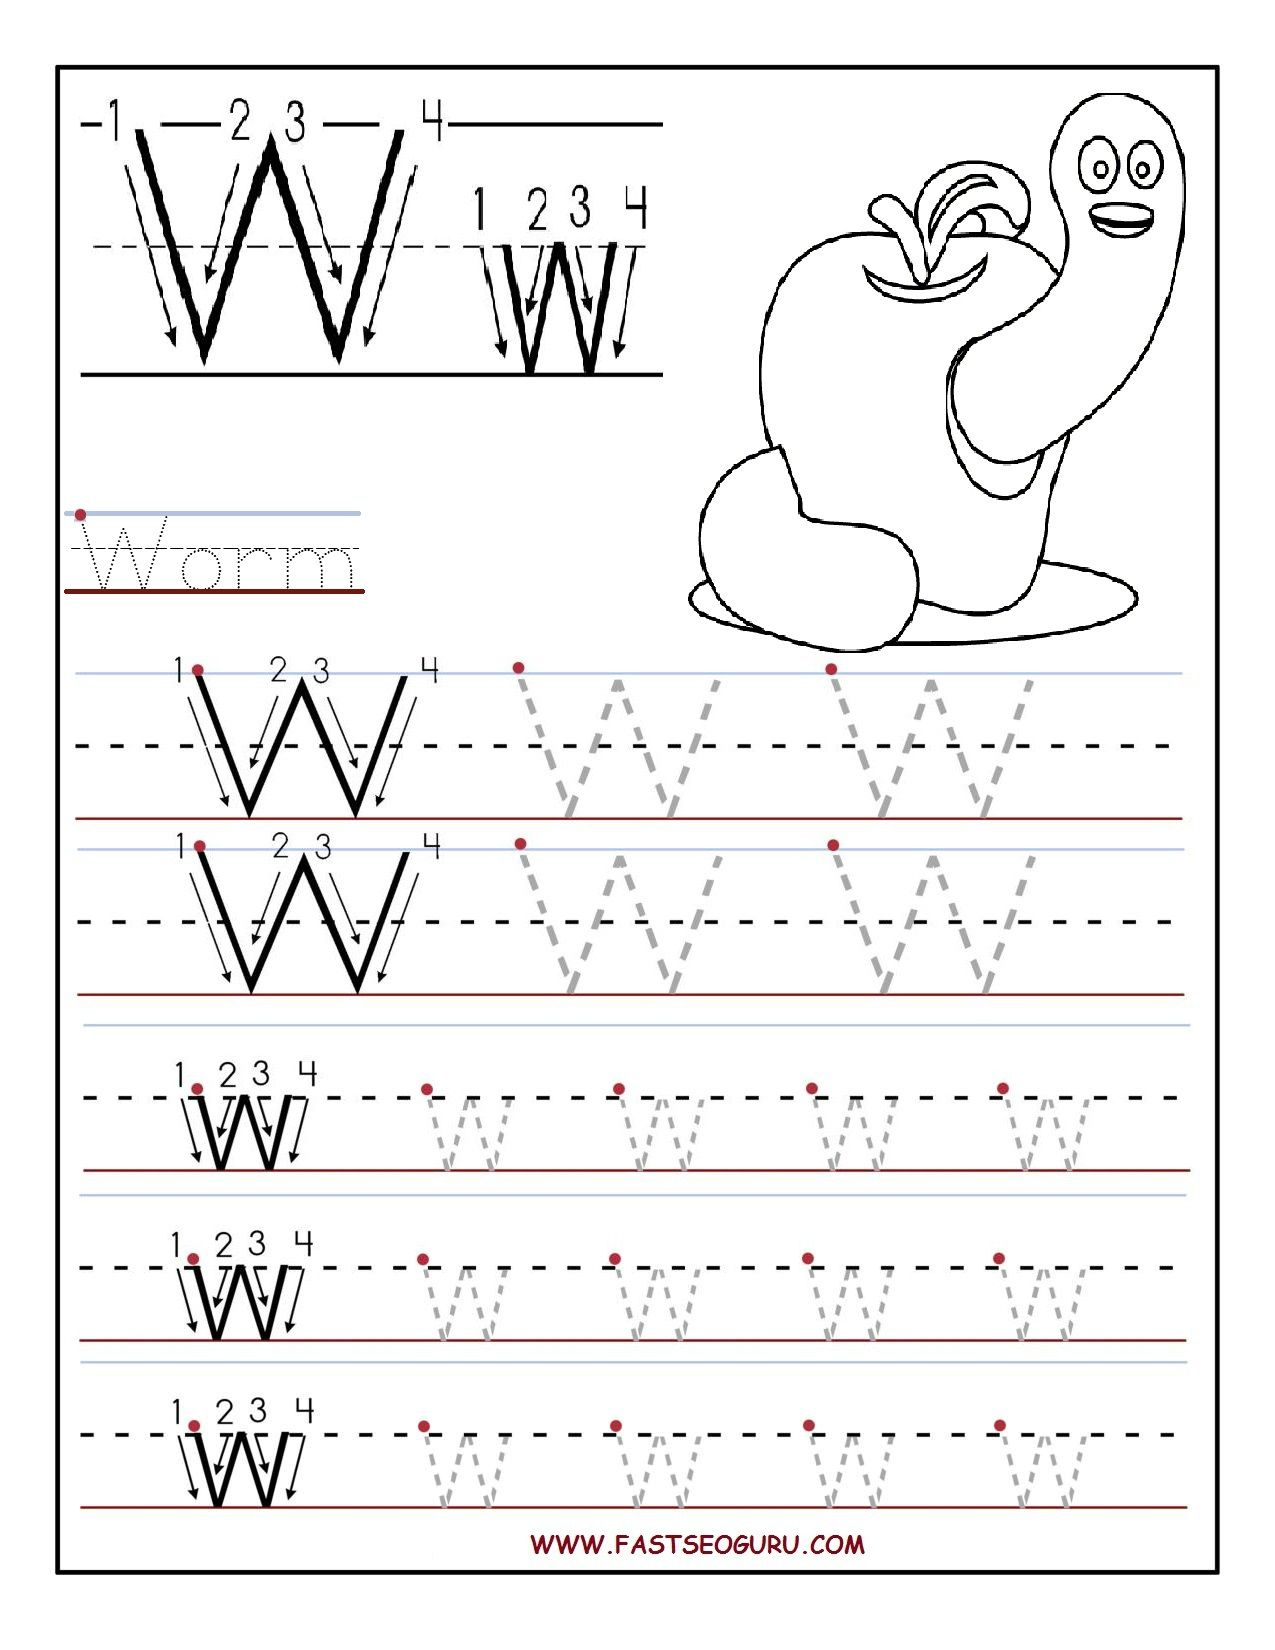 Printable Letter W Tracing Worksheets For Preschool in W Letter Tracing